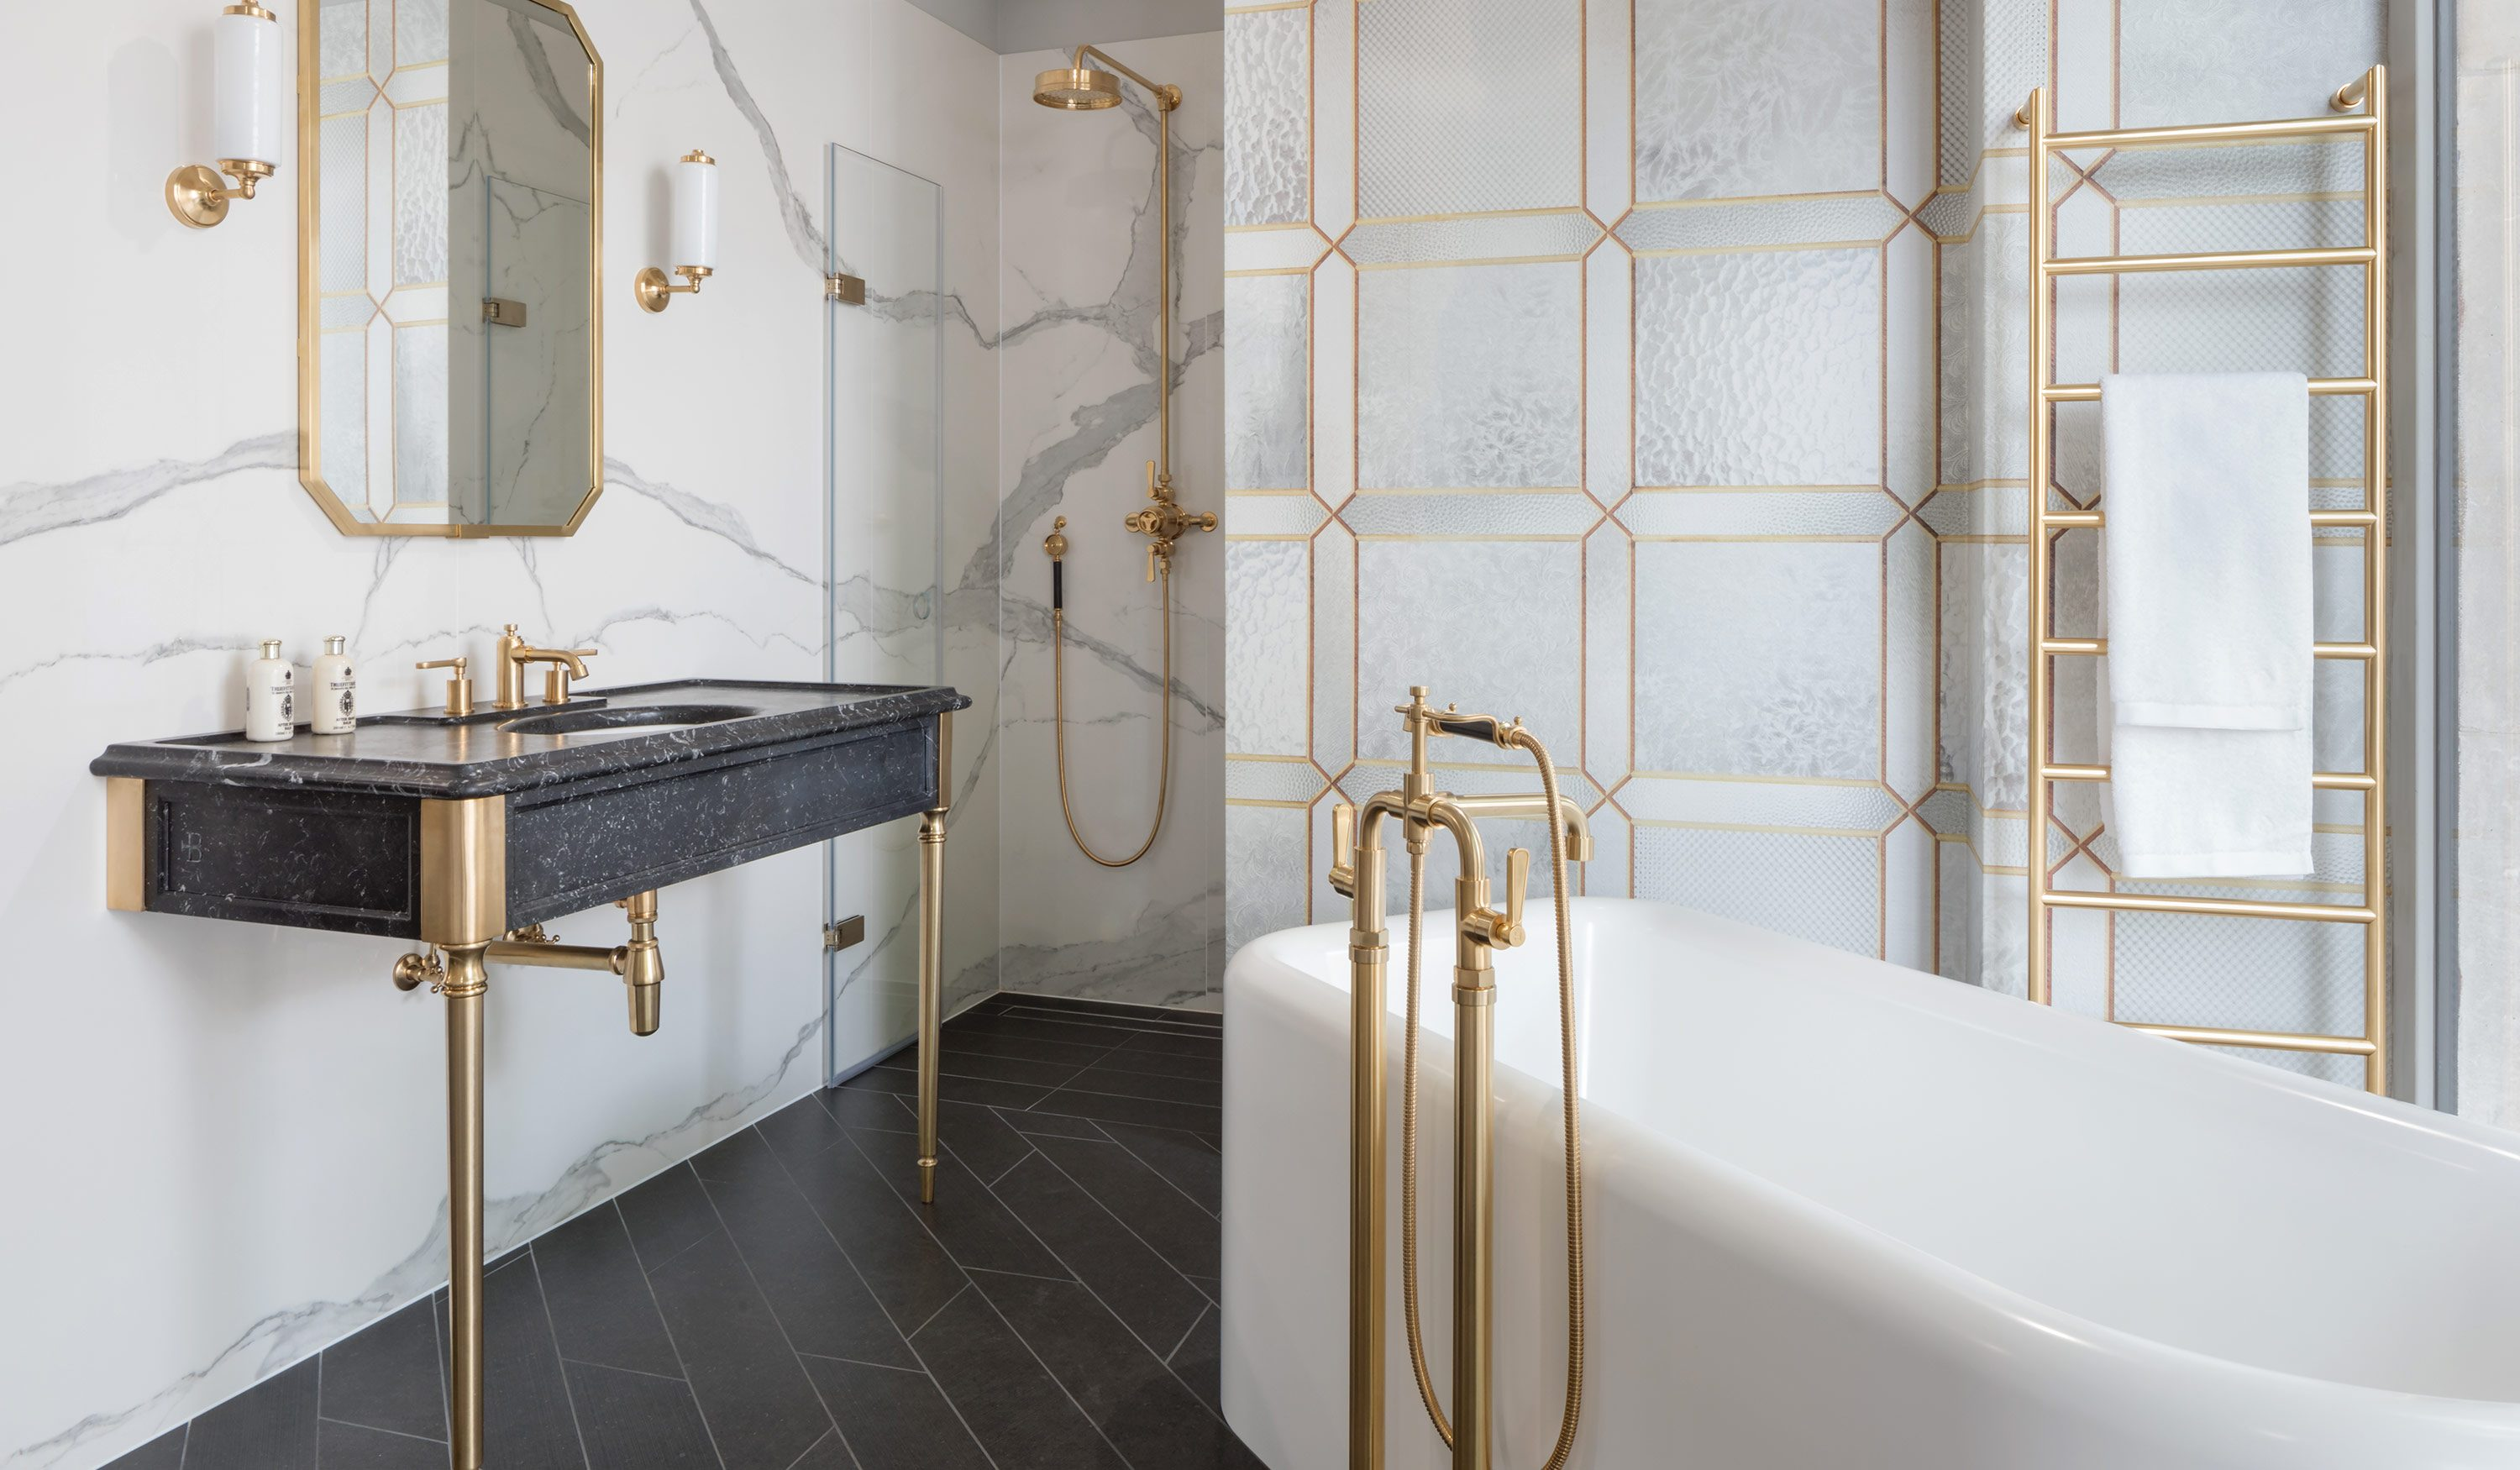 West One Bathrooms Knightsbridge Showroom Thurloe Place Hero1